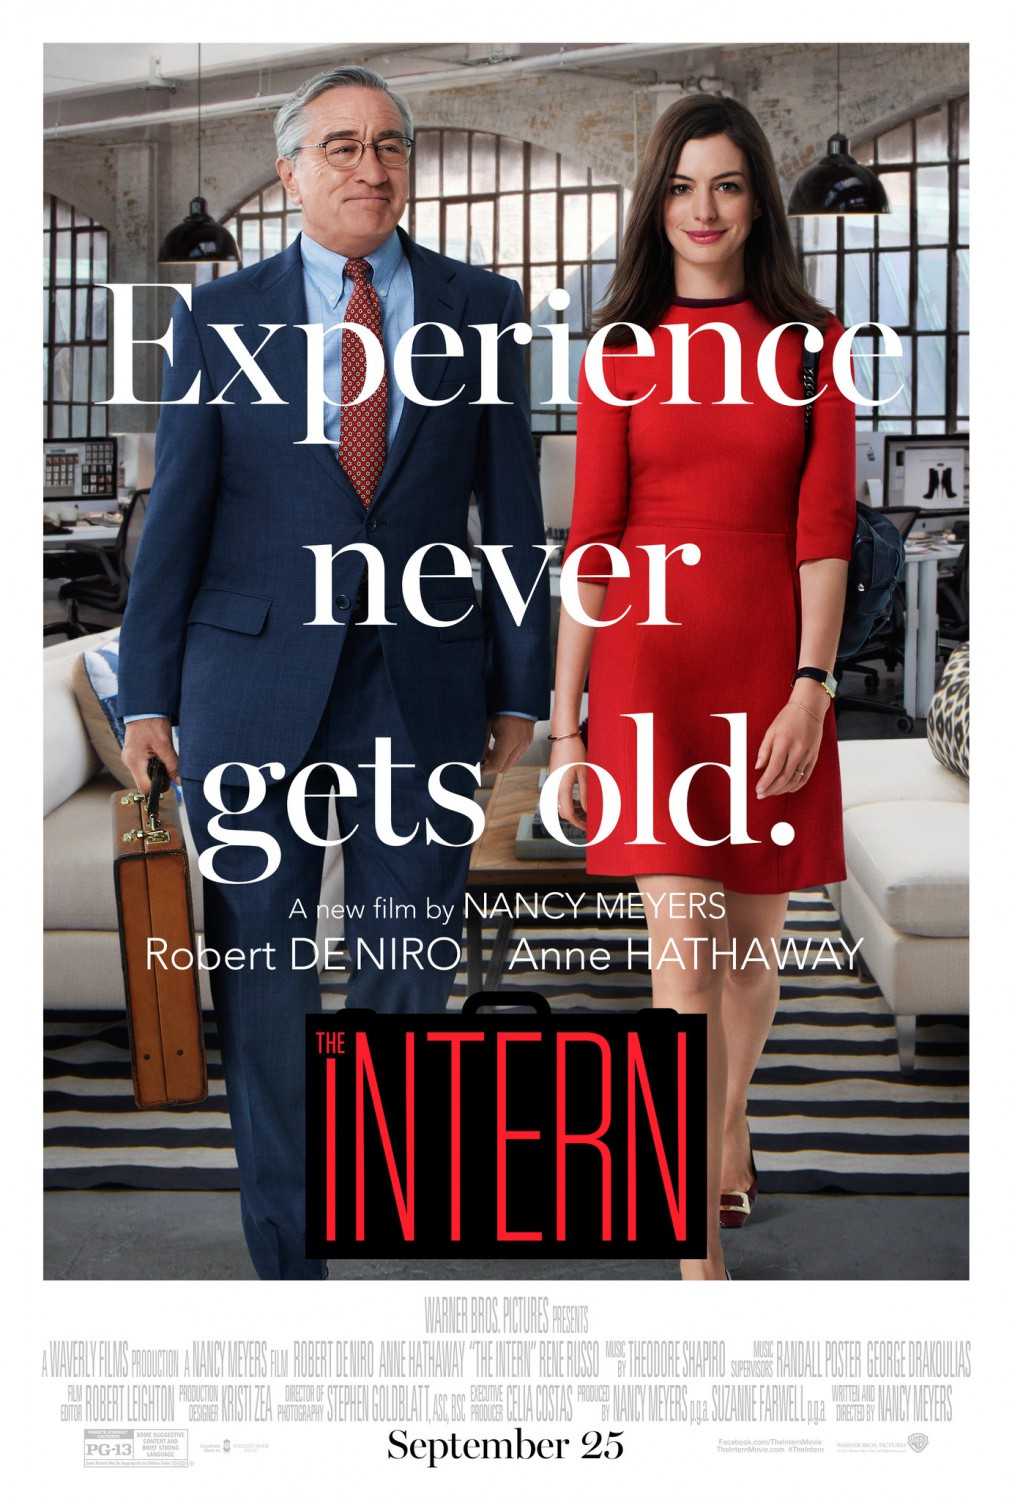 the internship movie generational gap analysis Administrative and management opportunities interested in learning the business-side of nih whether your interest is in budget/finance, project management, grants management, or human resources, the nih offers unexpected opportunity in administrative and management careers.